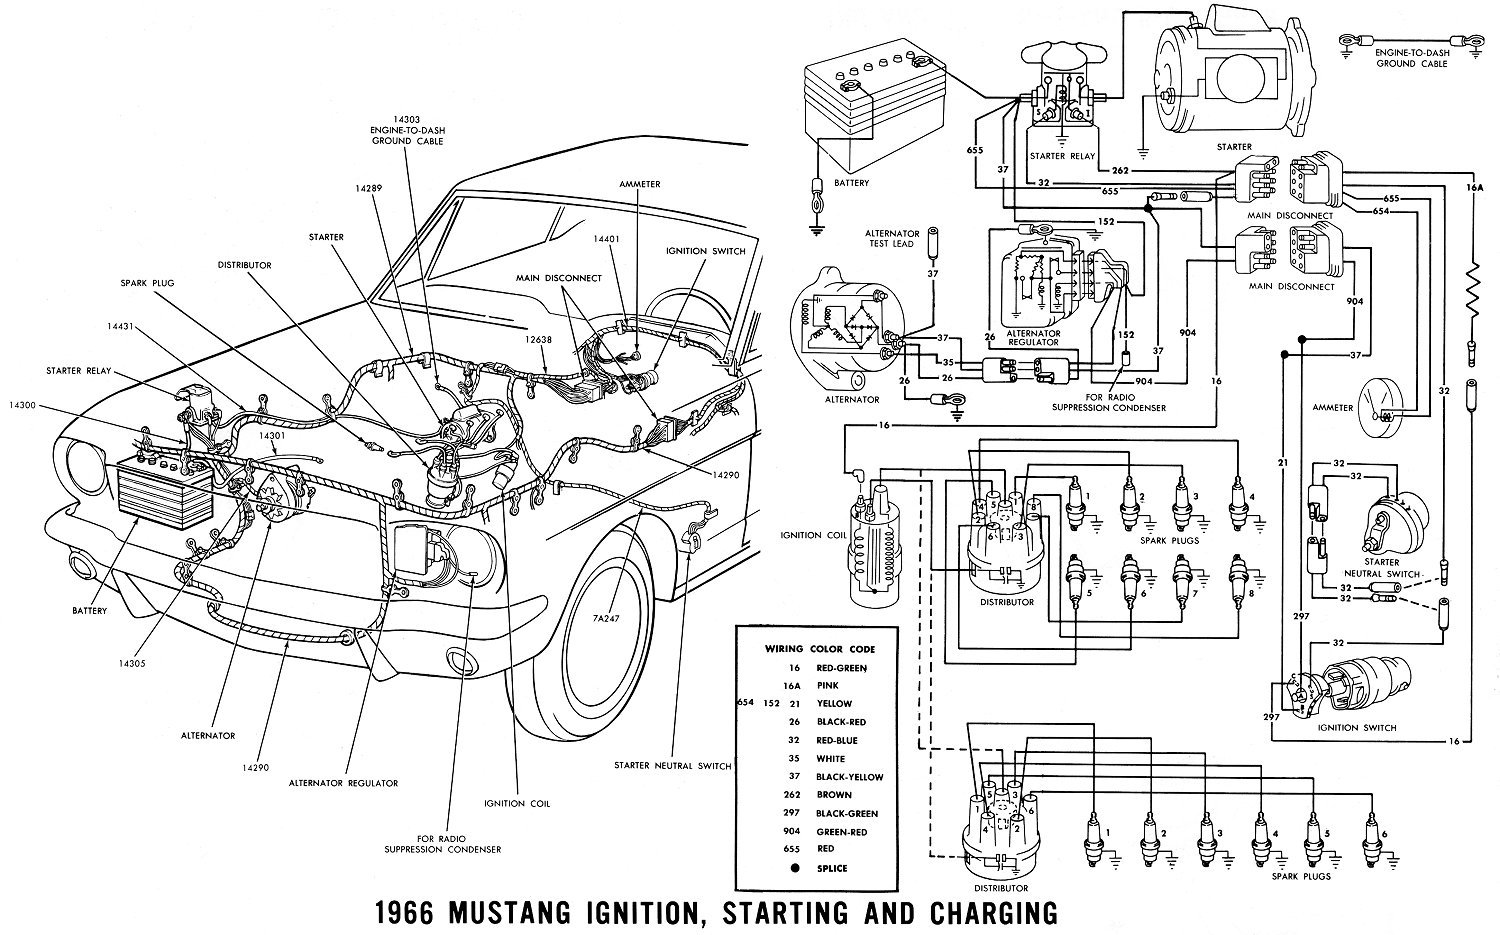 1990 mustang gt ac relay wiring diagram